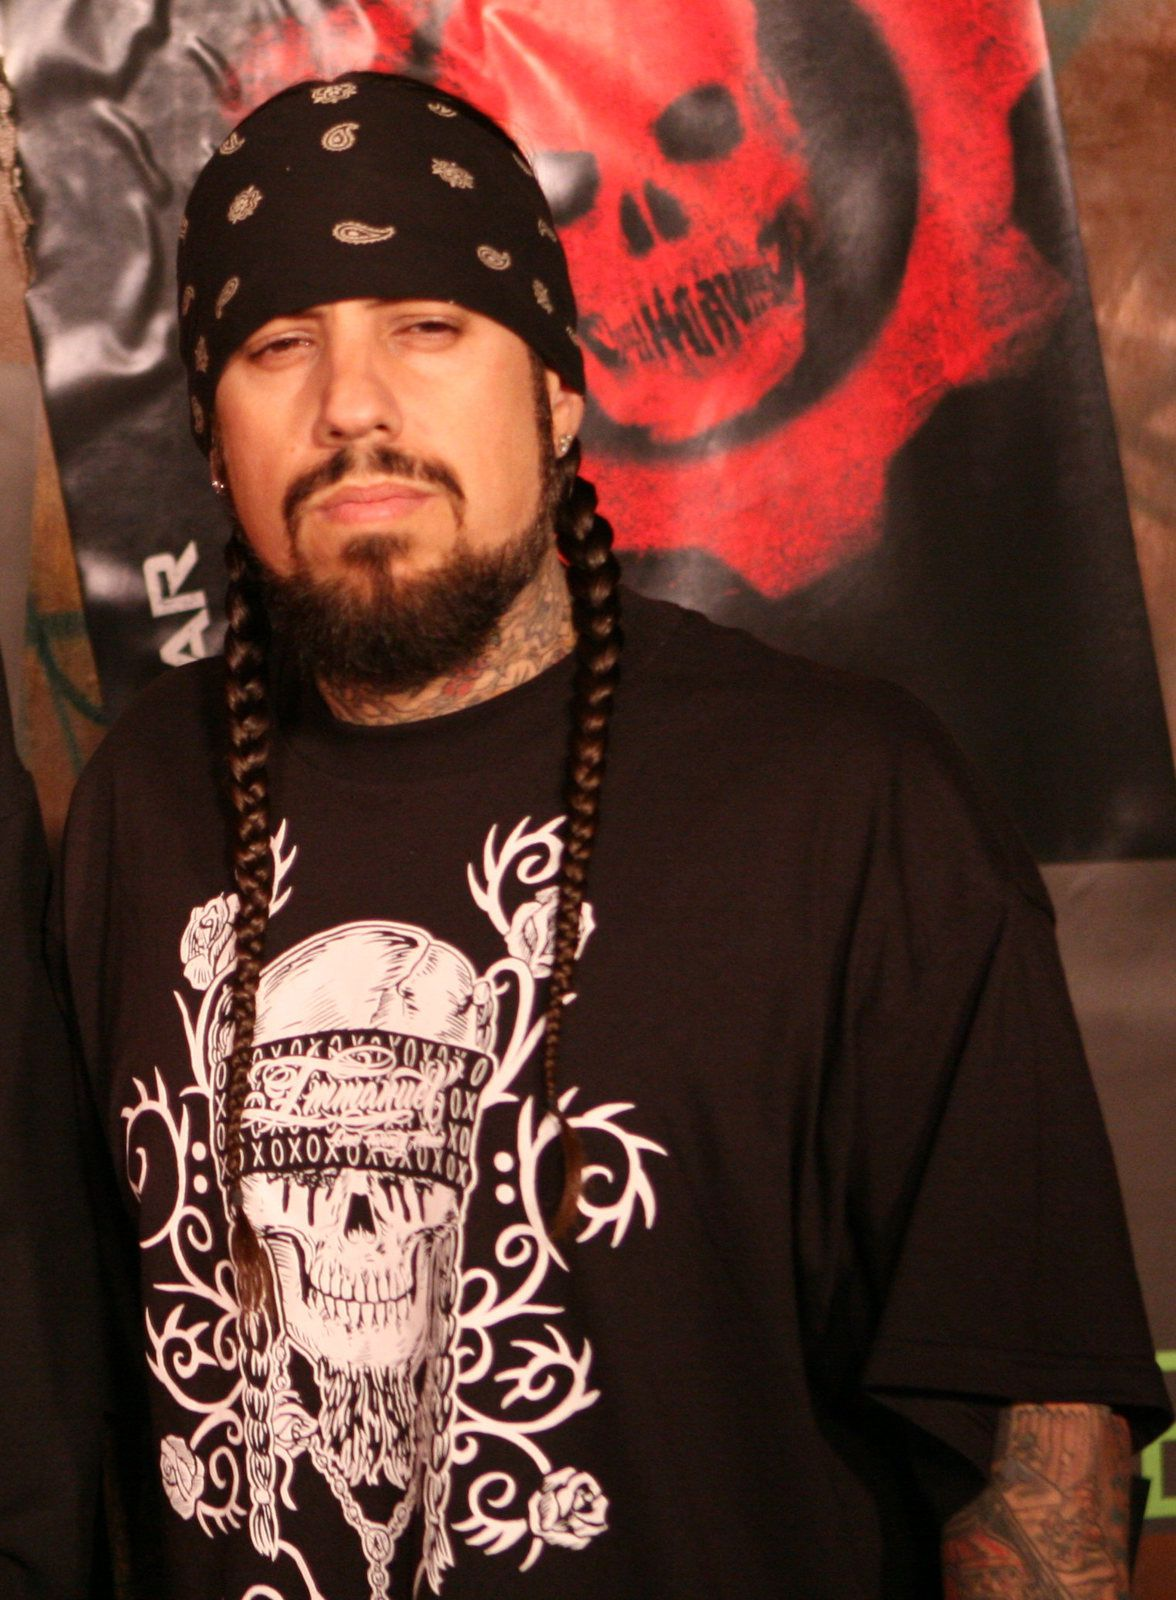 Reginald Arvizu, bassist for the nu metal band Korn, and guitarist for the hard rock band StillWell